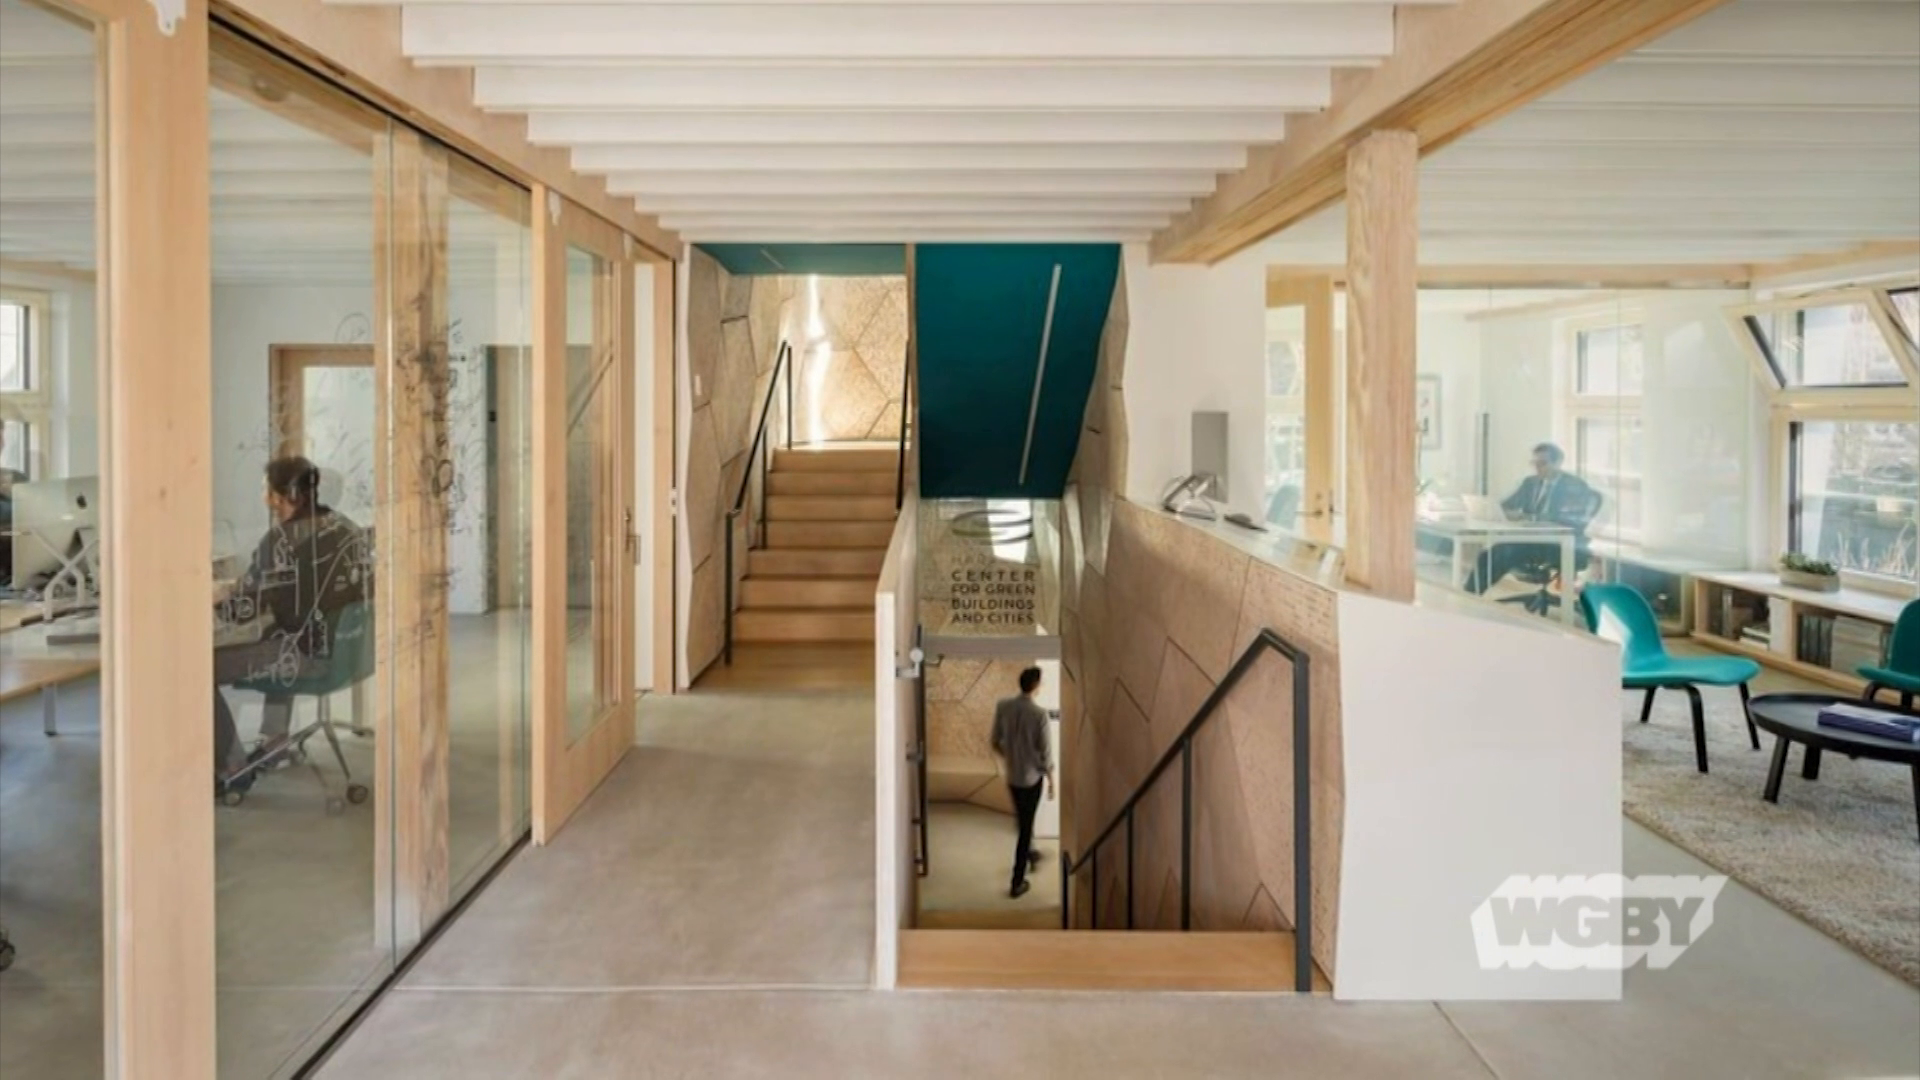 Visit Cambridge's innovative HouseZero, a passive design house that not only consumes as little energy as possible, but also produces energy.